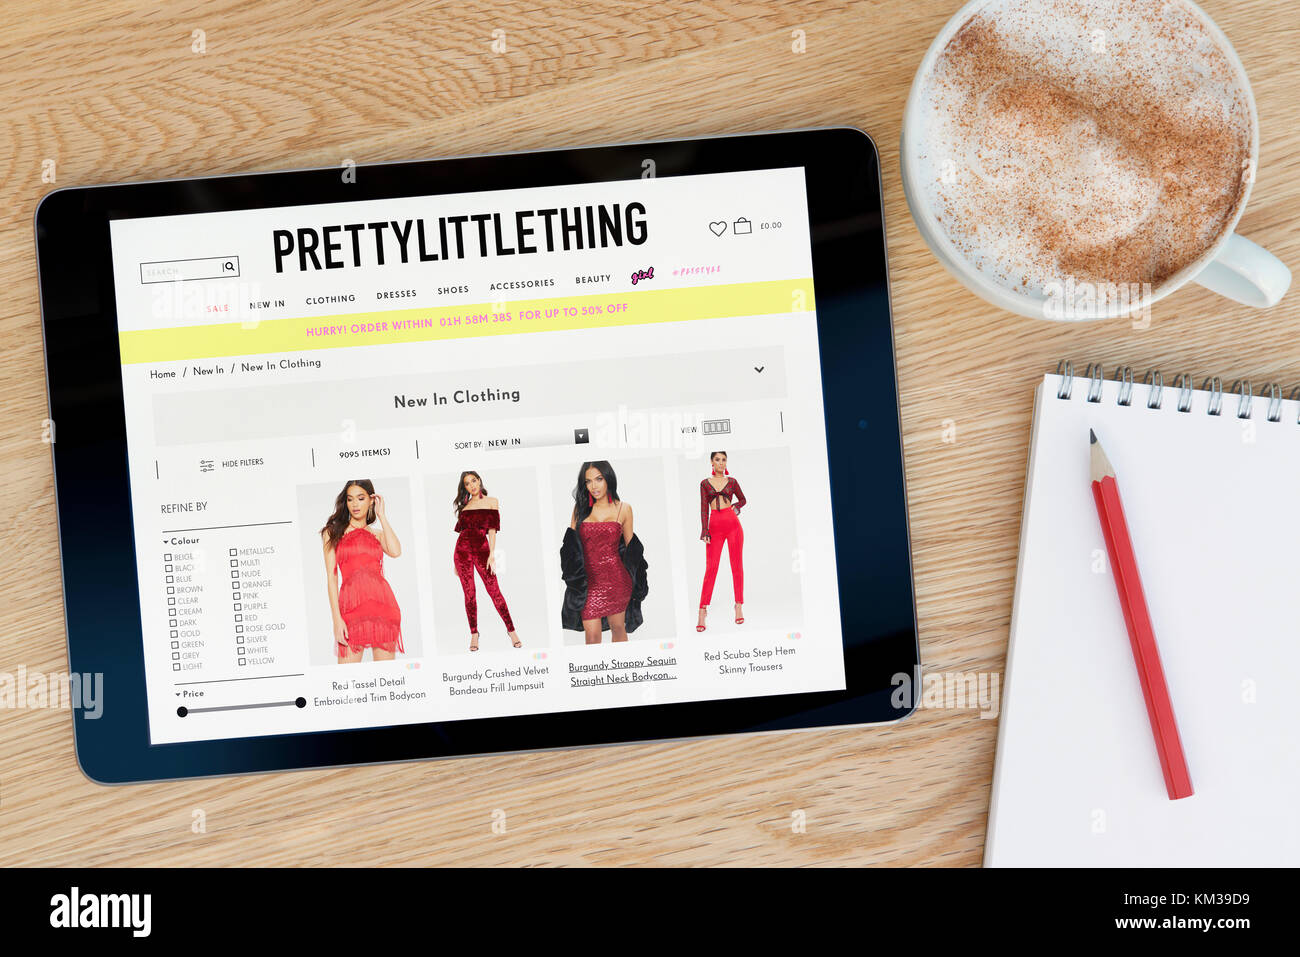 The Pretty Little Thing website on an iPad tablet device which rests on a wooden table beside a notepad & pencil - Stock Image